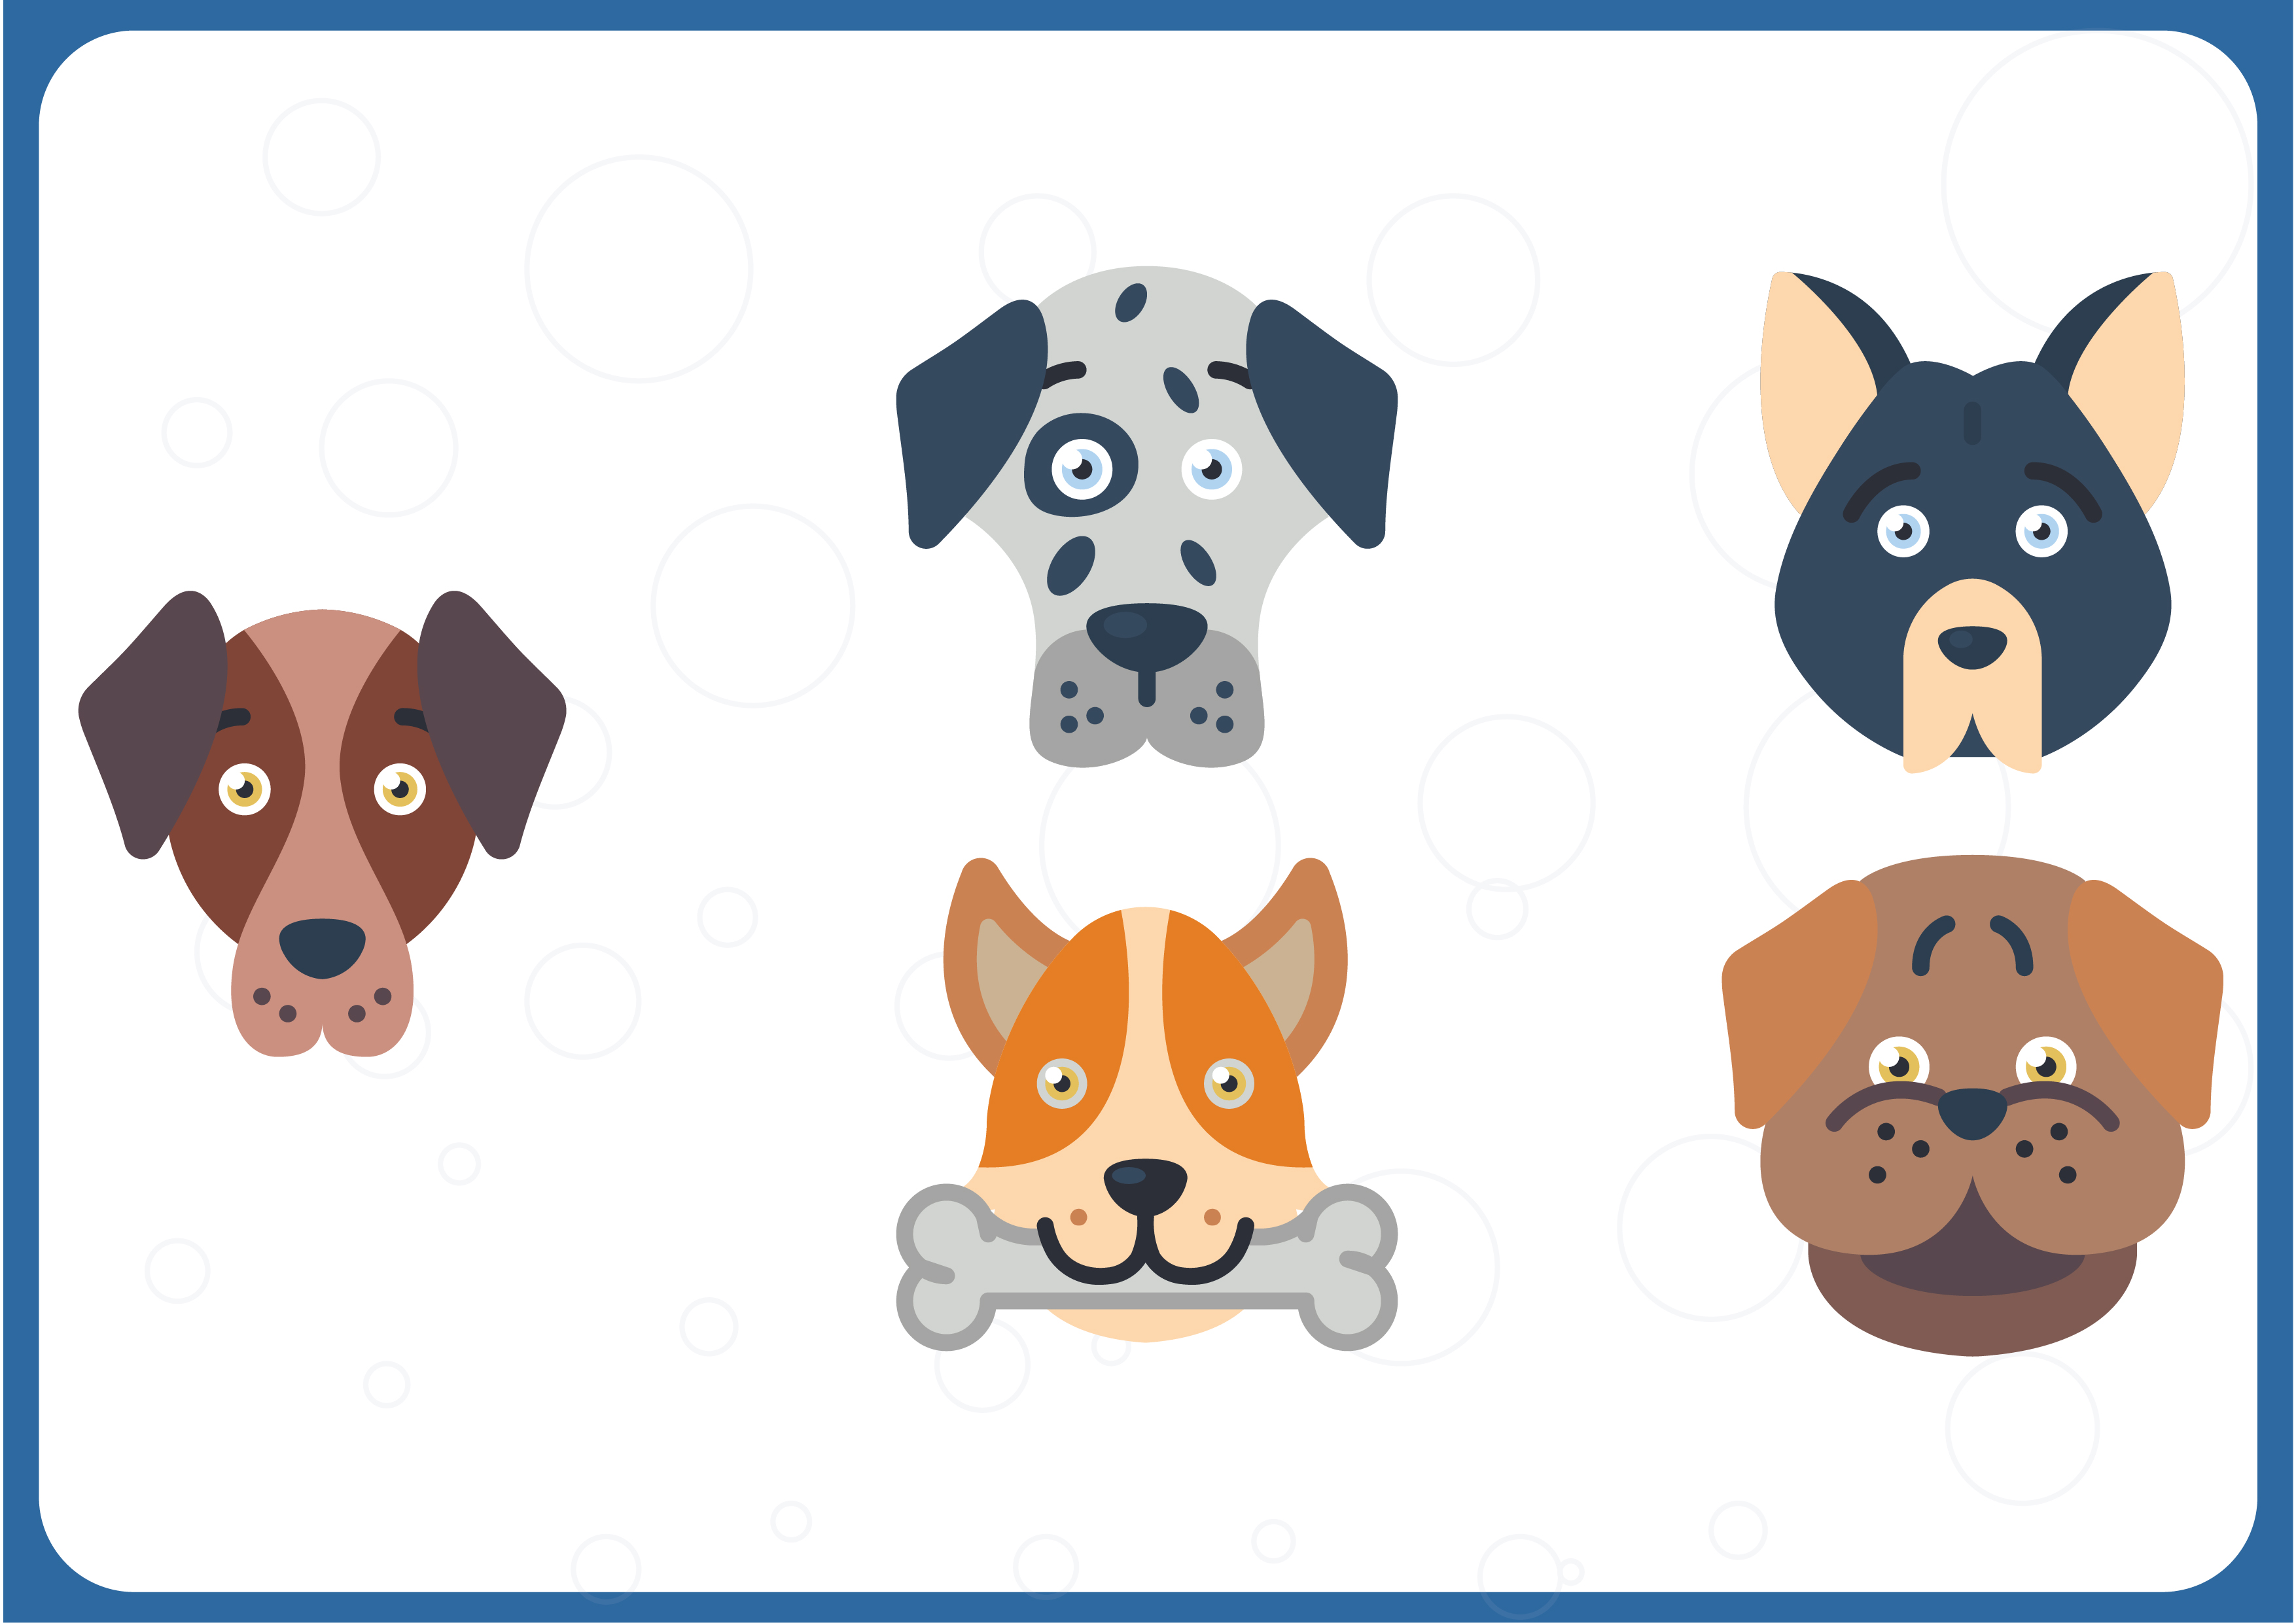 Download Free Dog Avatars Graphic By Colorkhu123 Creative Fabrica for Cricut Explore, Silhouette and other cutting machines.